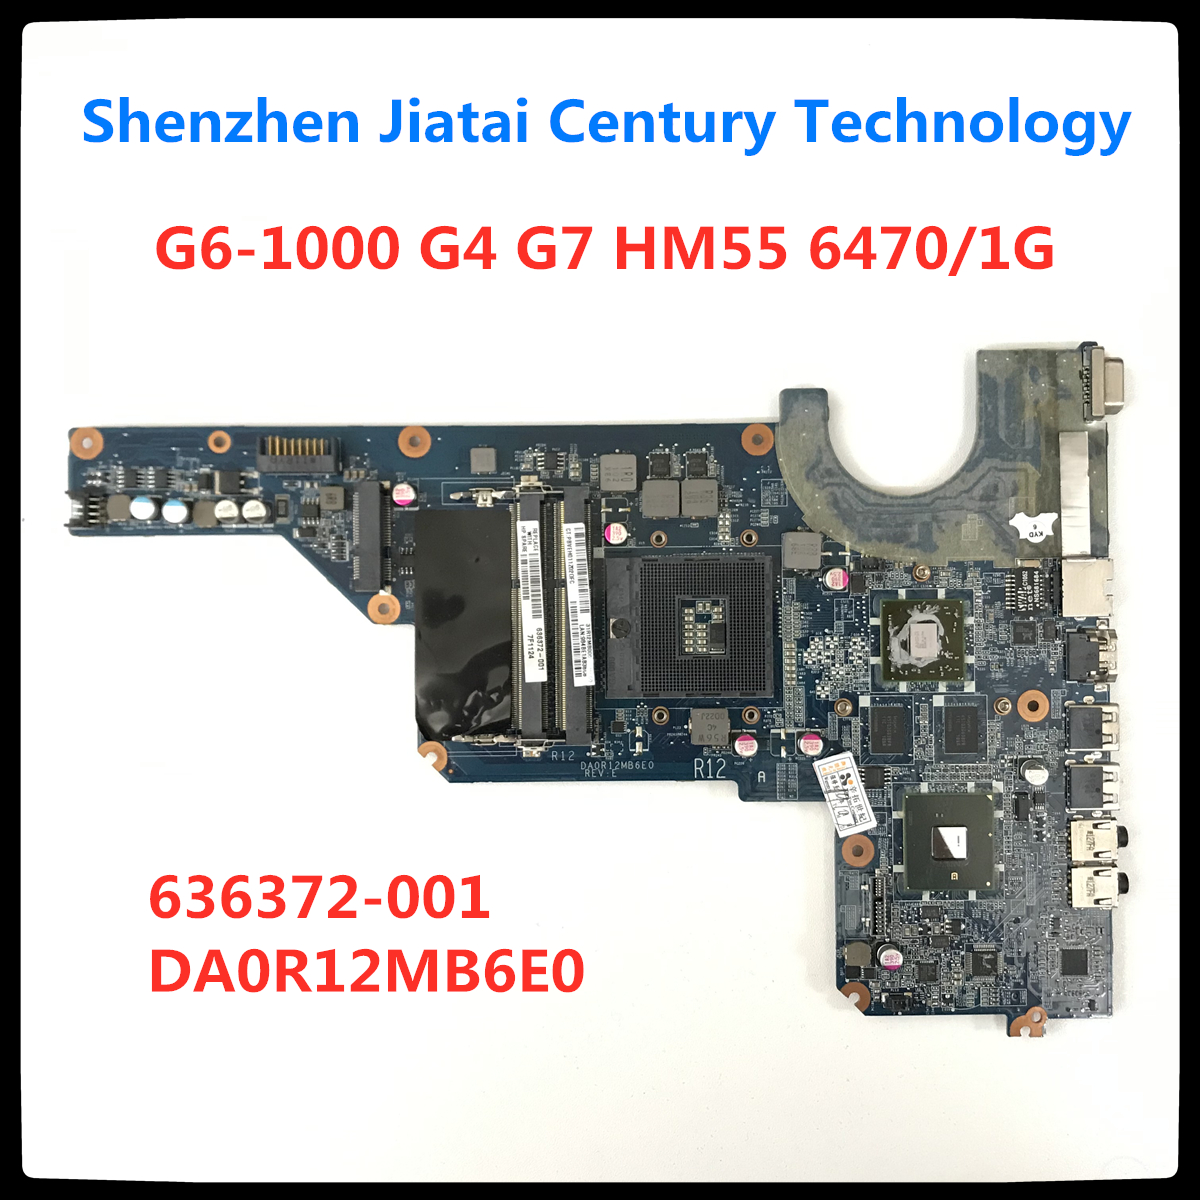 Free Shipping 636372-001 Motherboard For HP Pavilion G6-1000 G4 G7 Laptop Motherboard HM55 6470/1G DA0R12MB6E0 DA0R12MB6E1